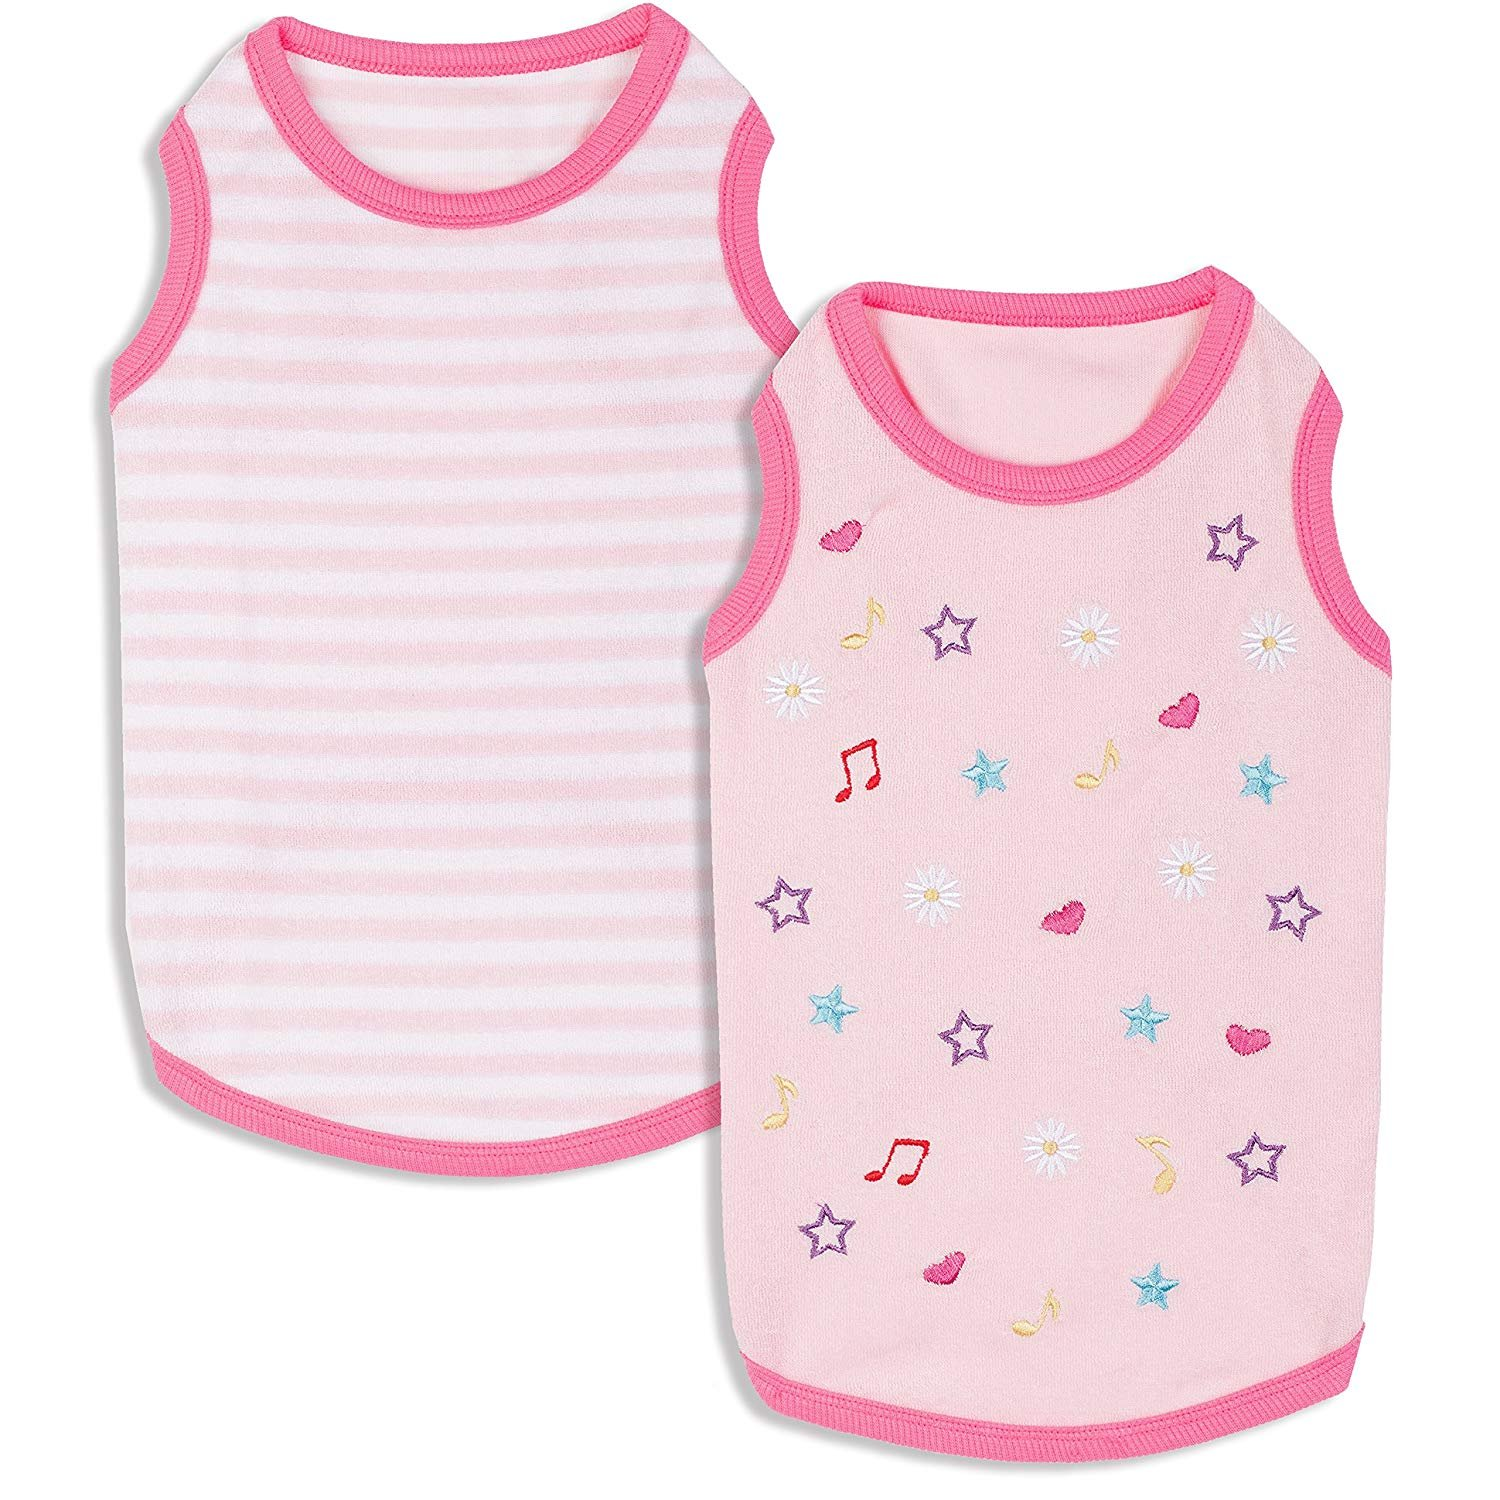 Blueberry Pet Pack of 2 Soft & Comfy Terry Cotton Pink Wonderland Sleep & Play Dog Pajamas & Tank Top T Shirt, Back Length 8'', Clothes for Puppies & Cats